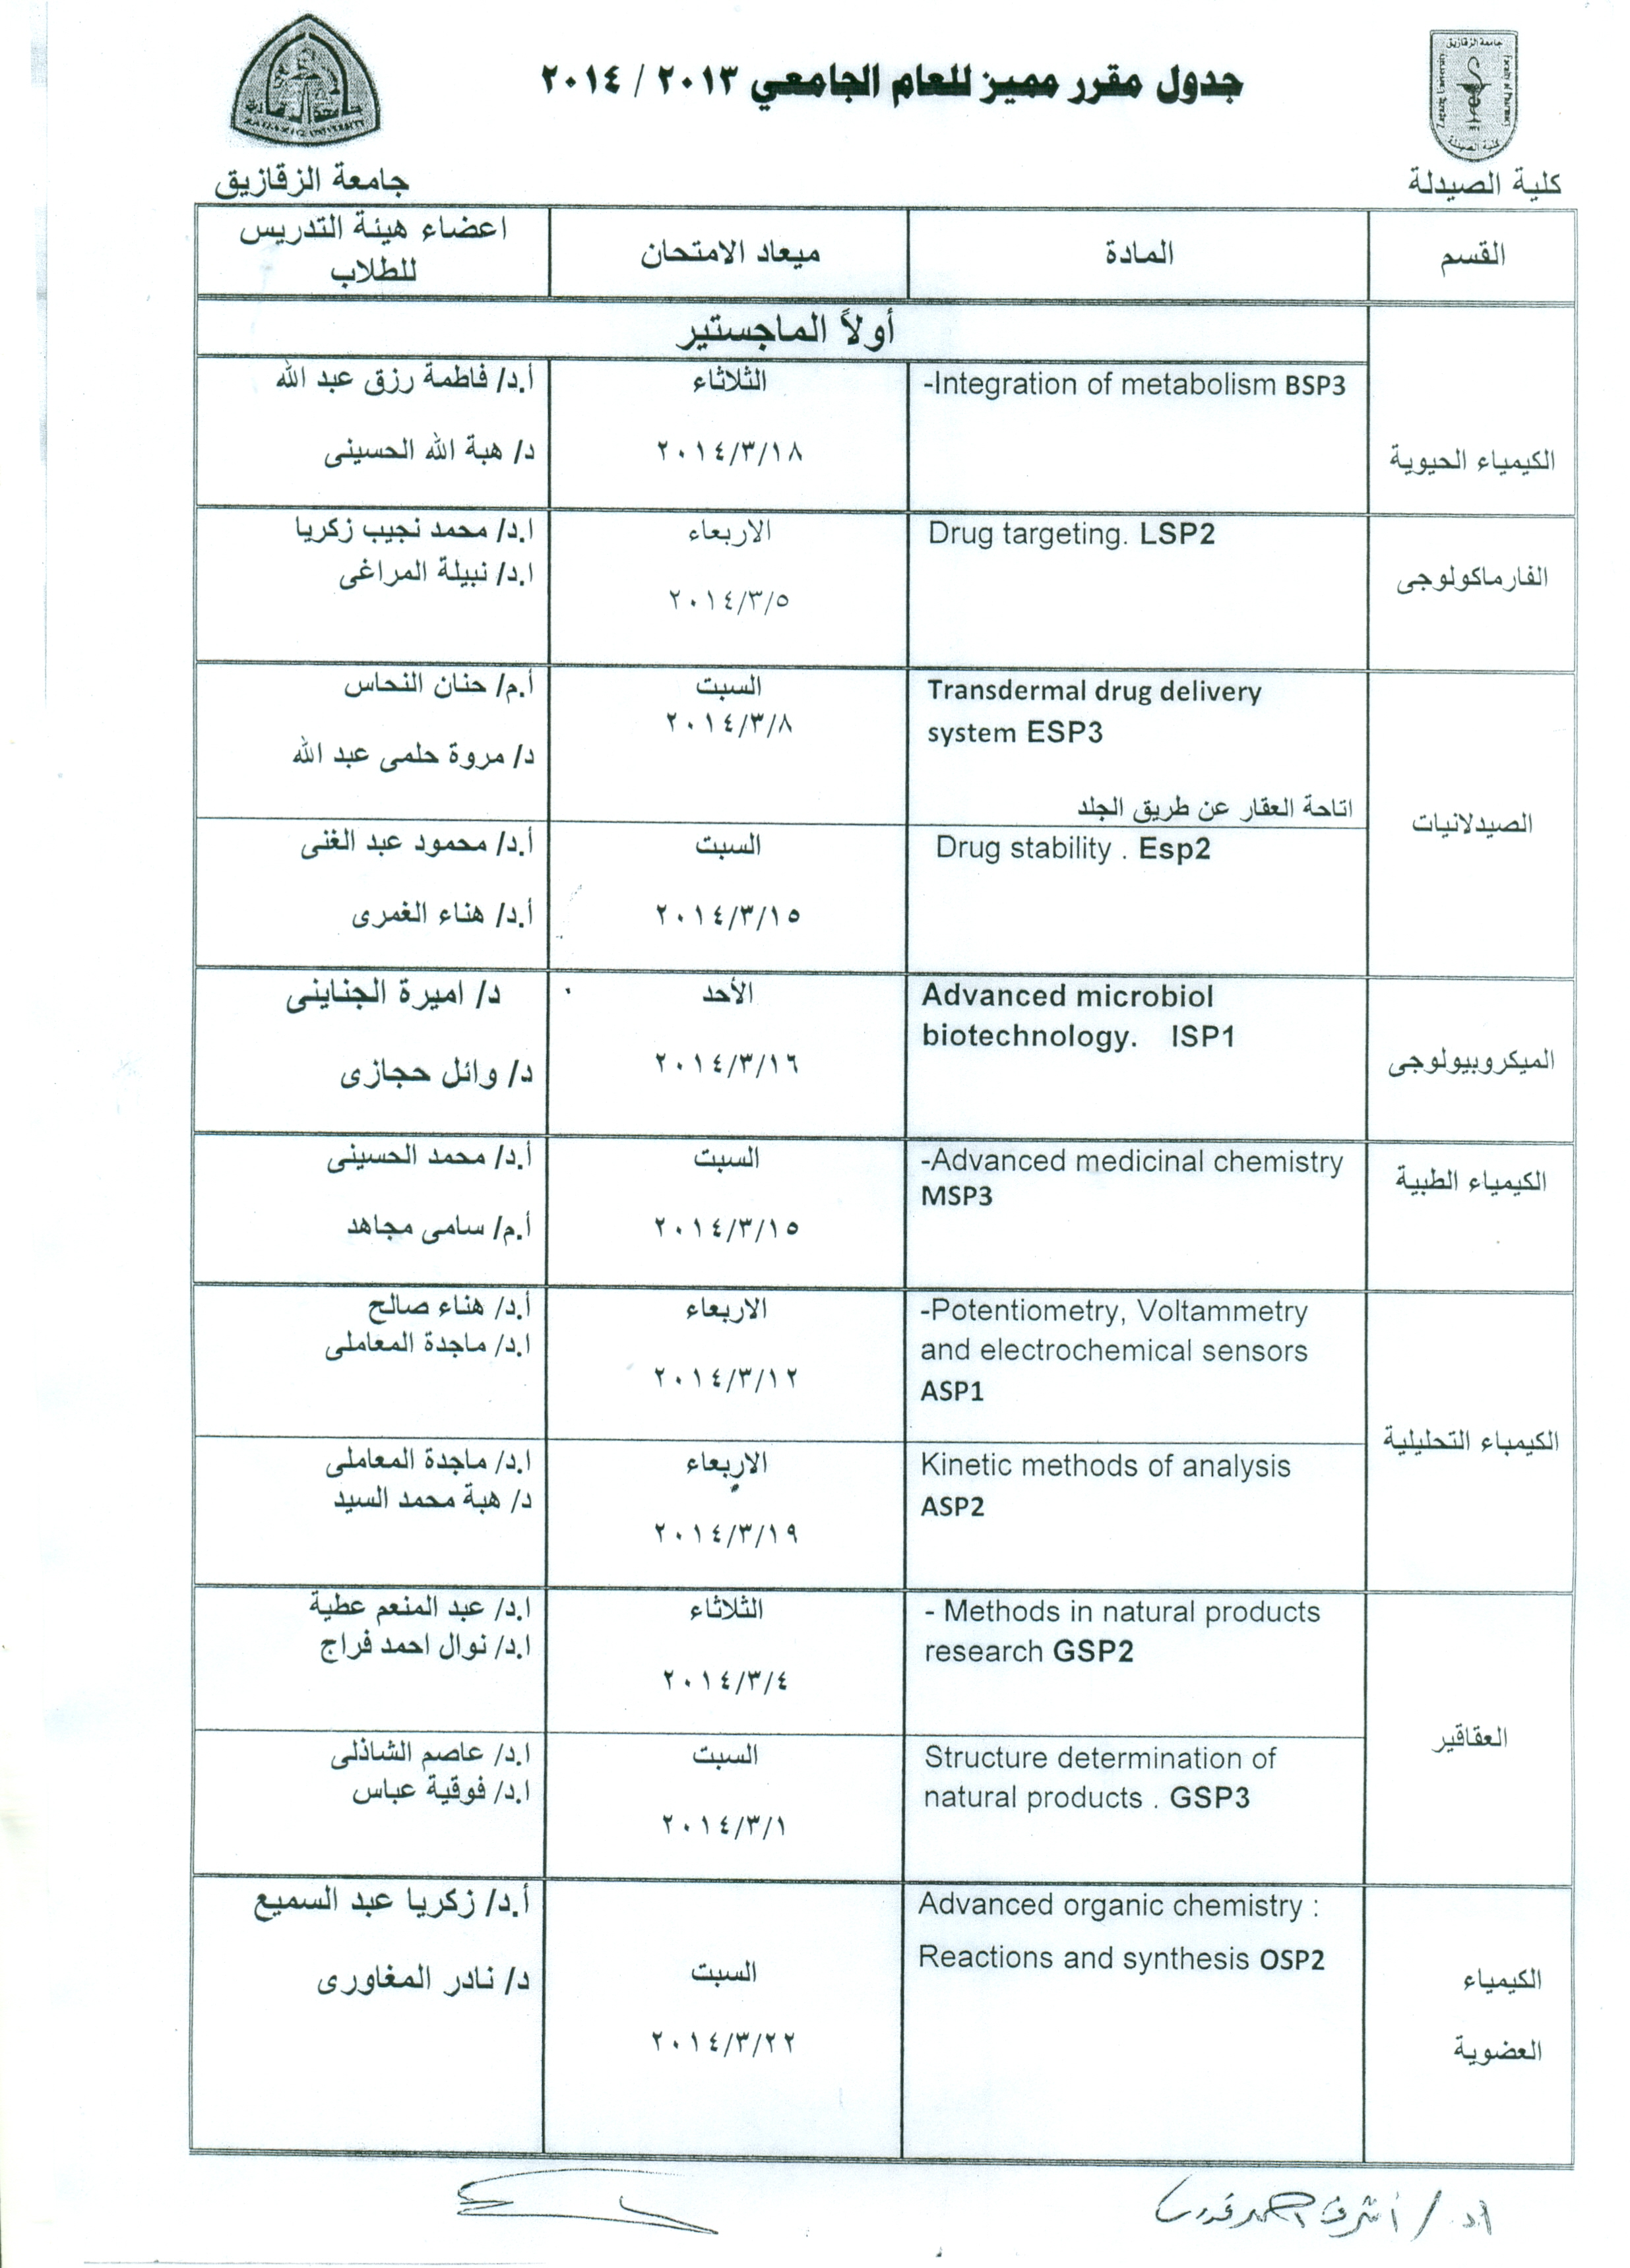 Senior decision exam schedule for the academic year 2013/2014 (Master _ PhD)